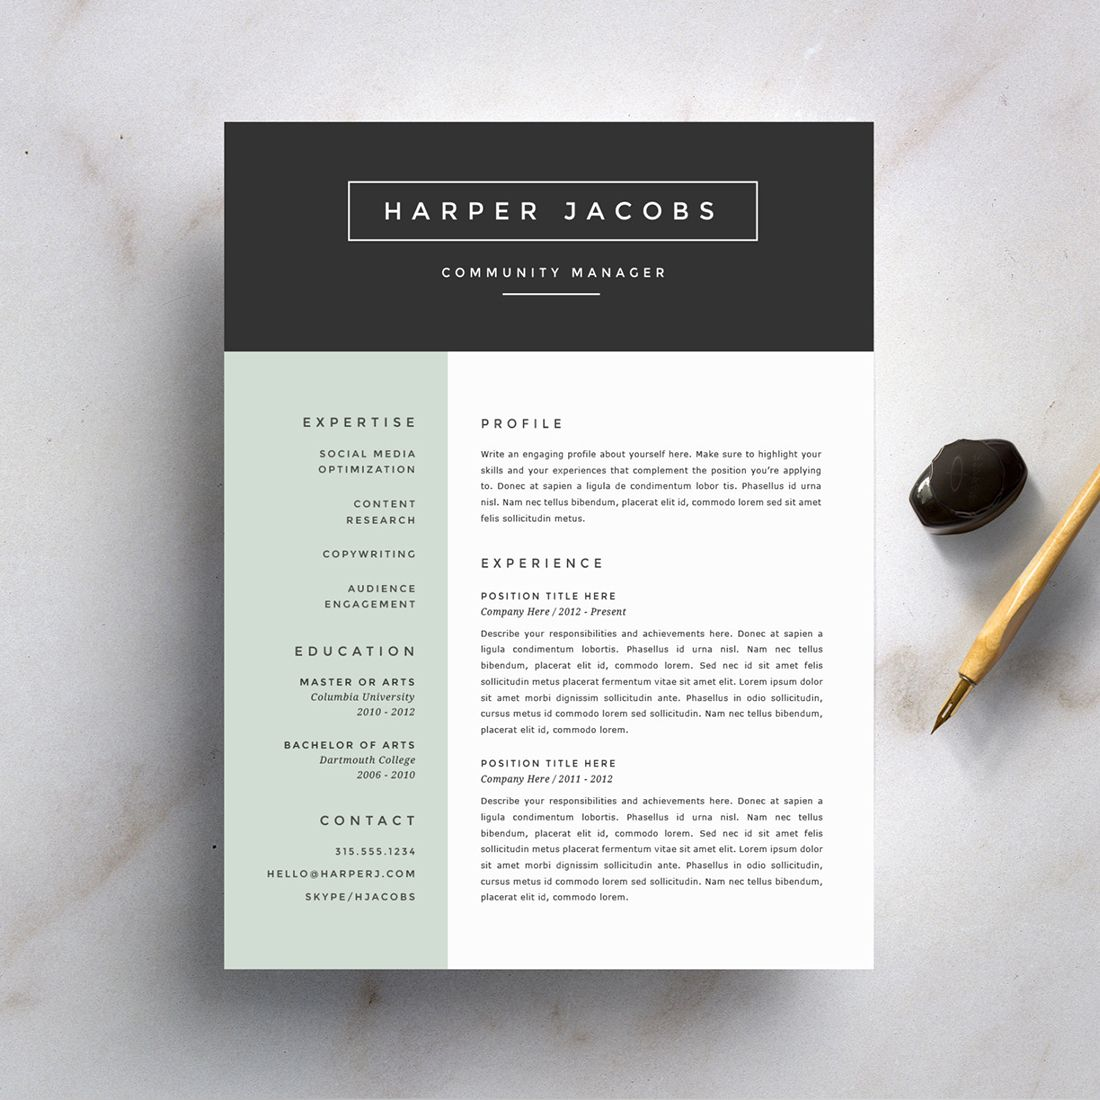 Professional Resume Template U0026 Cover Letter, Cv, Professional Modern  Creative Resume Template, MS Word For Mac + Pc, US Letter + Best CV  Professional Fonts For Resume